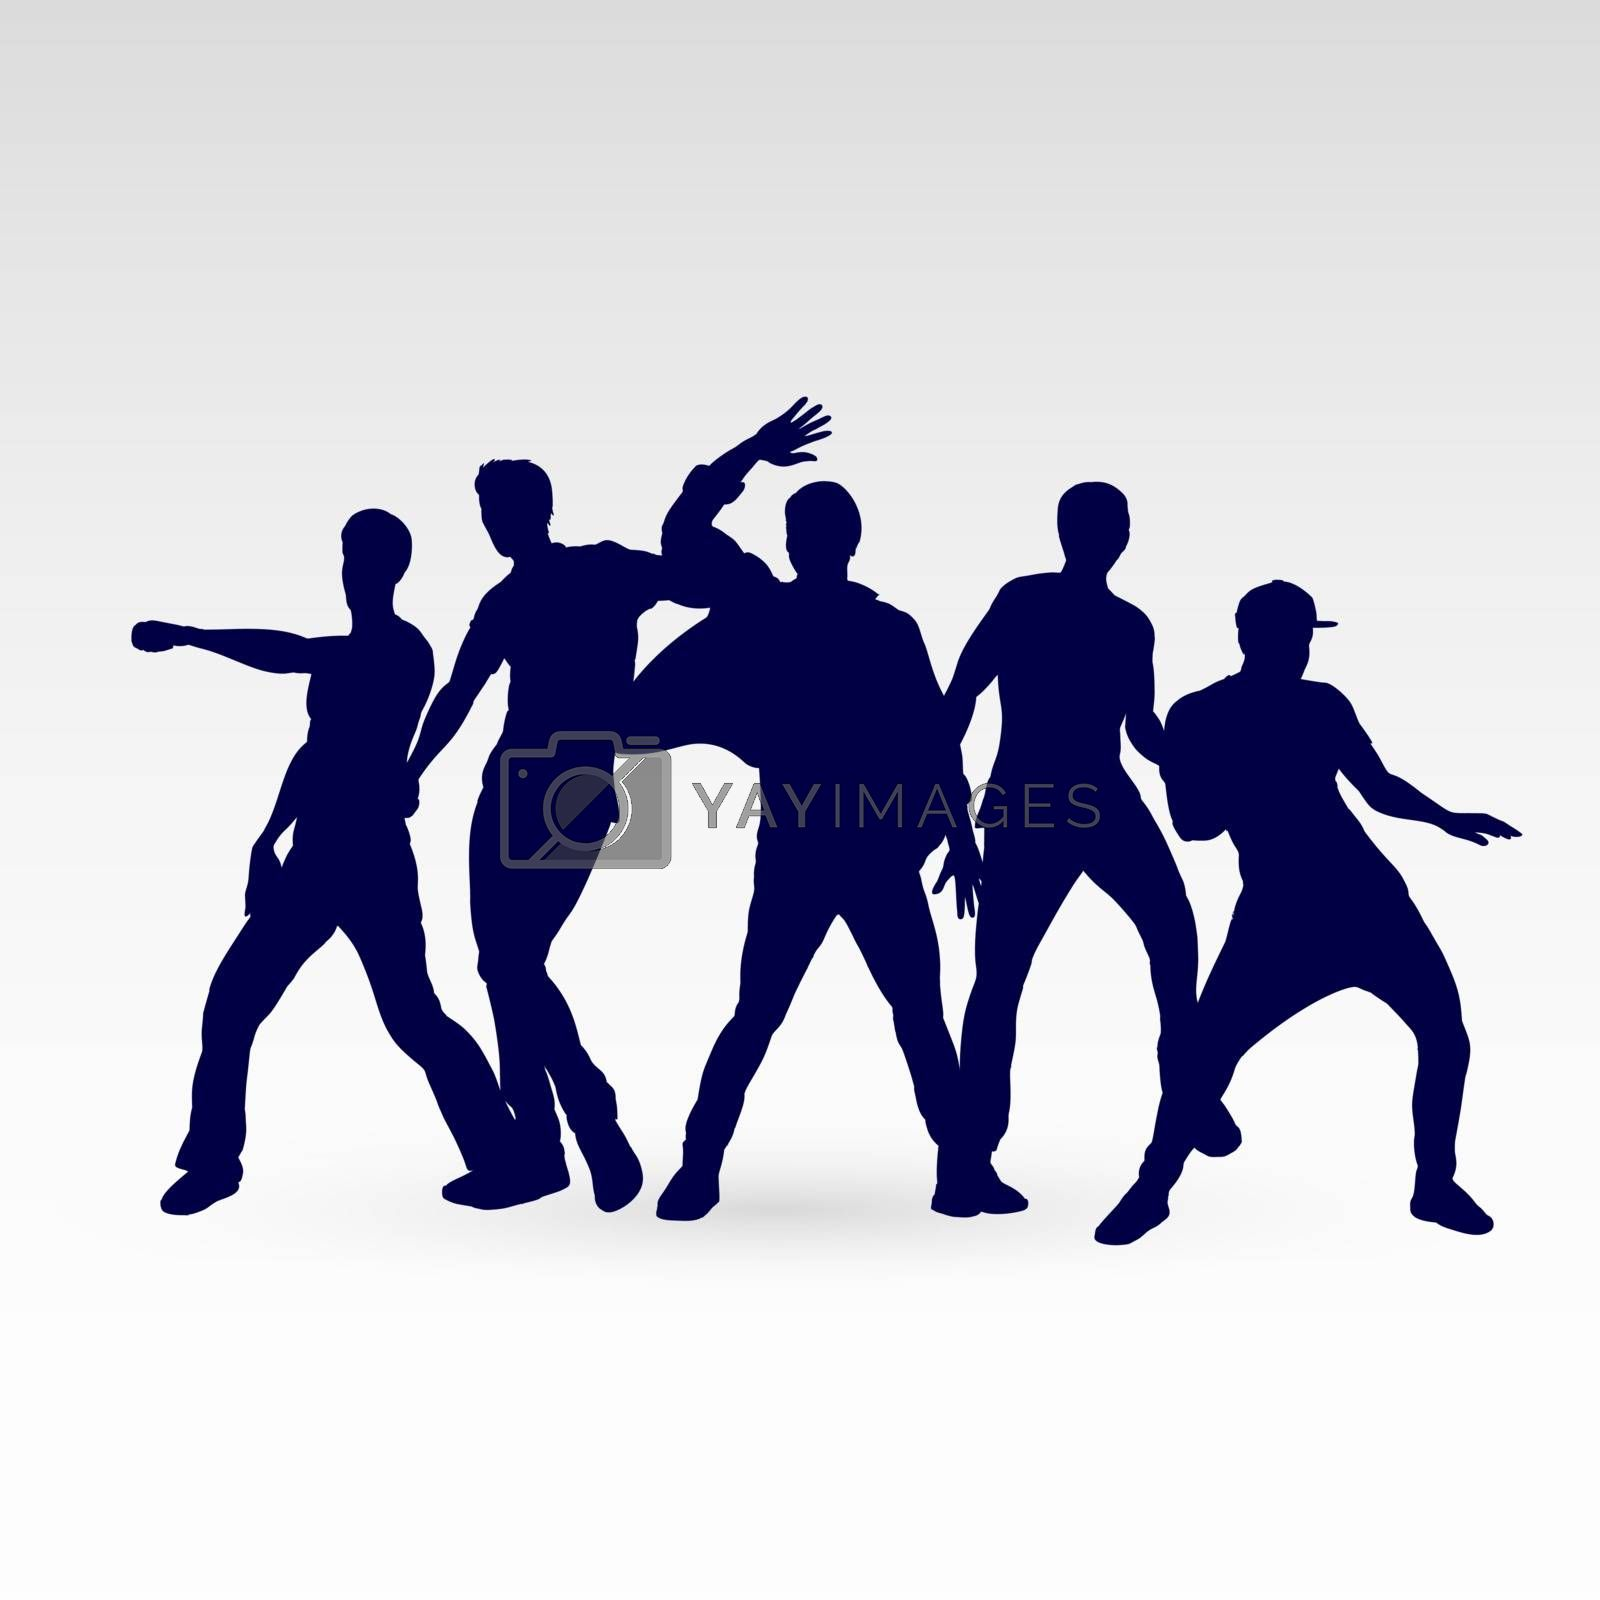 Set of Silhouette Dancing Males in Different Poses for Desgin Templates